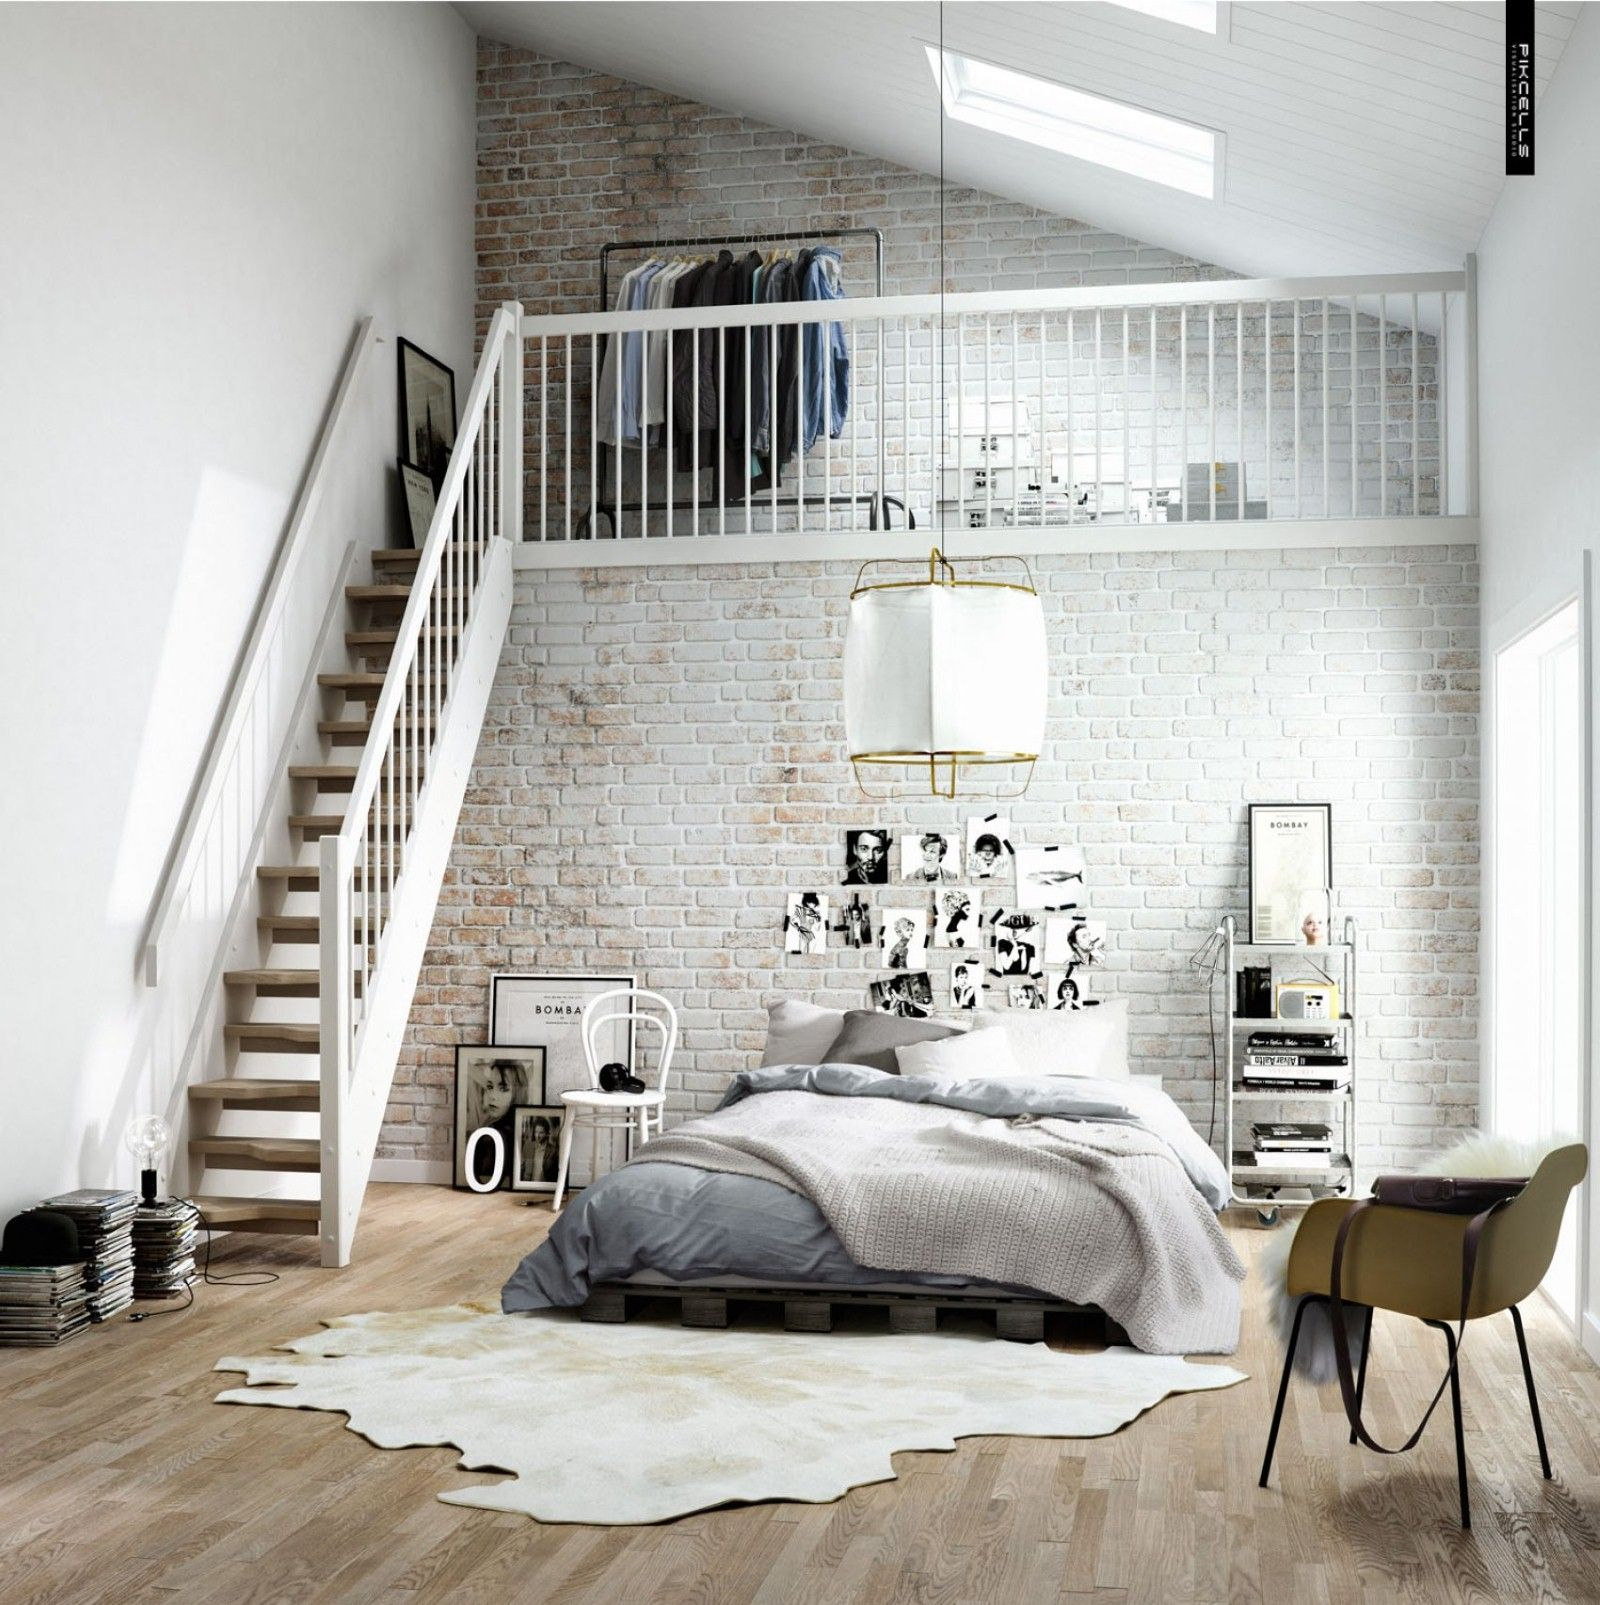 Bedroom Charming Scandinavian Bedroom Design With Natural White ...